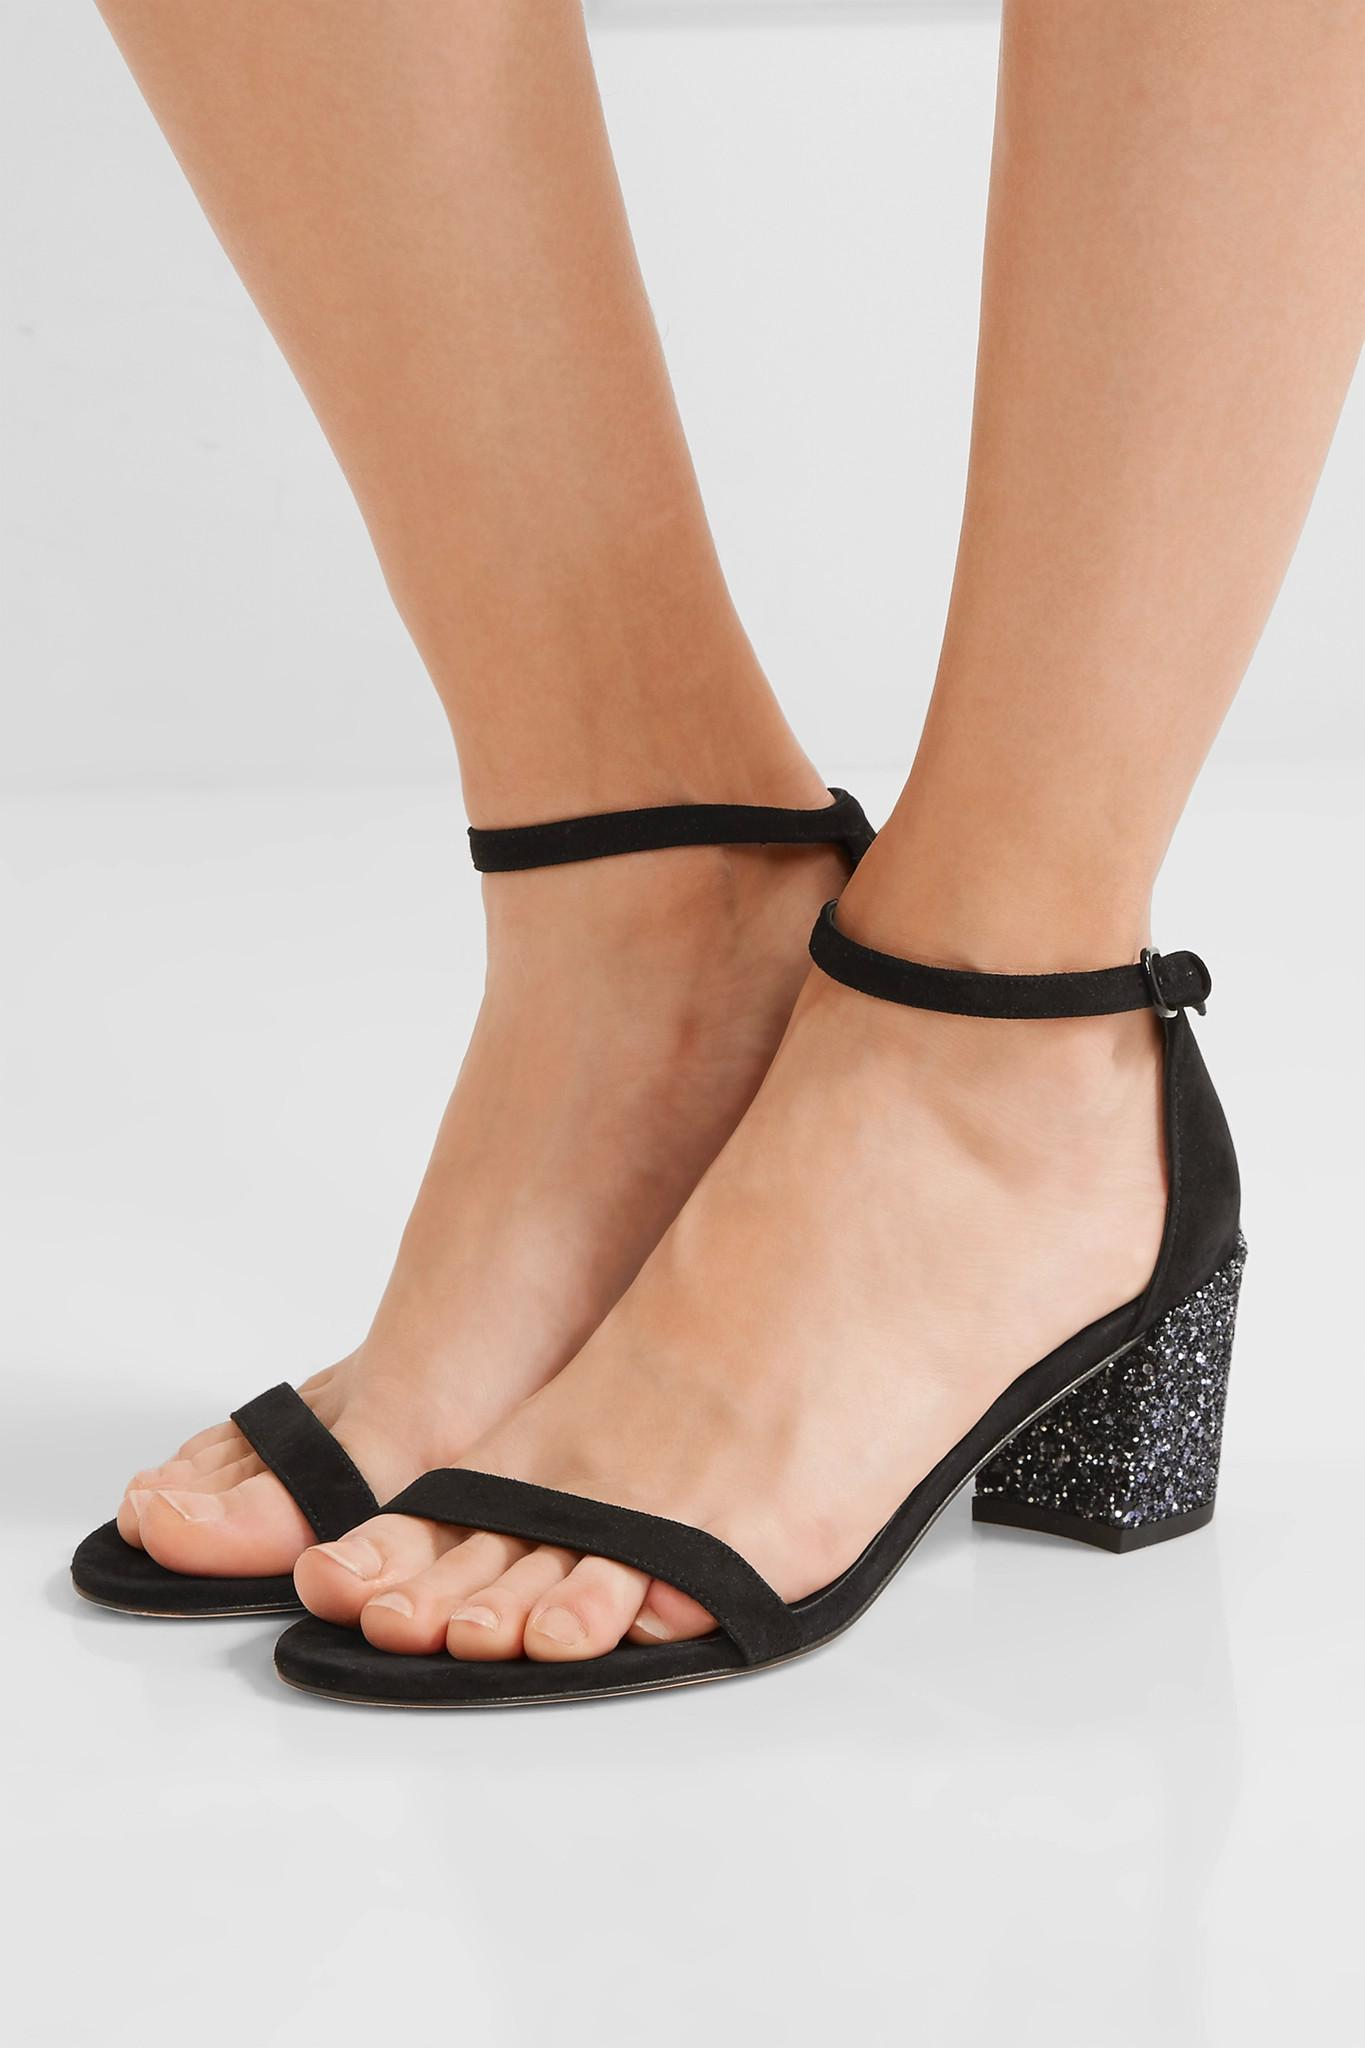 Simple Black Wedge Shoes